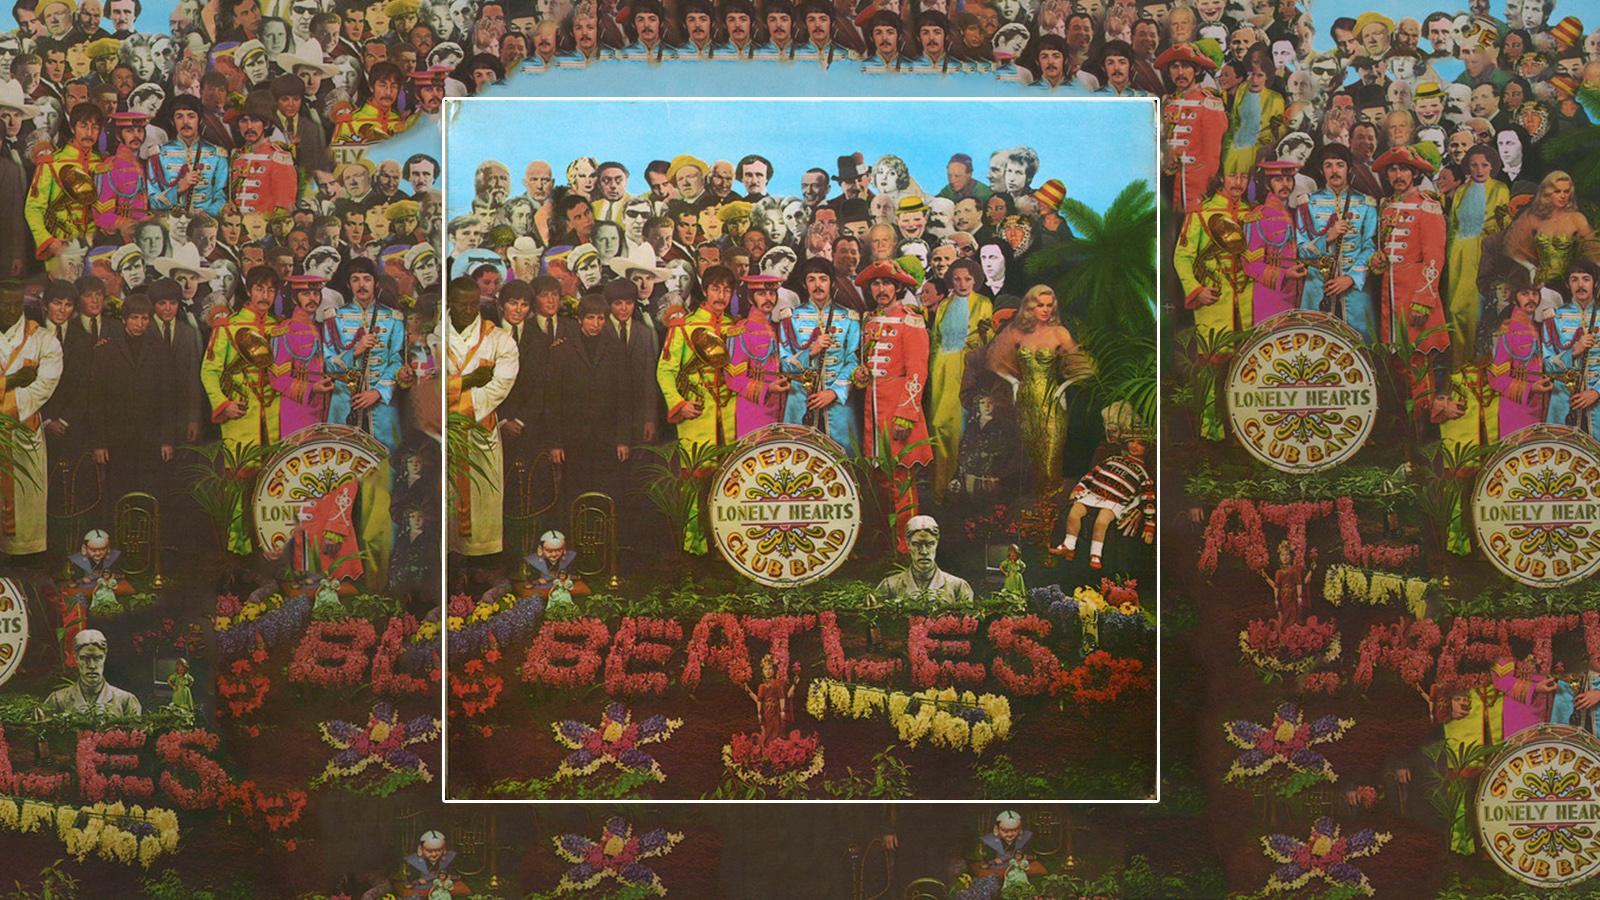 Sgt. Pepper's Lonely Hearts Club Band - Artwork